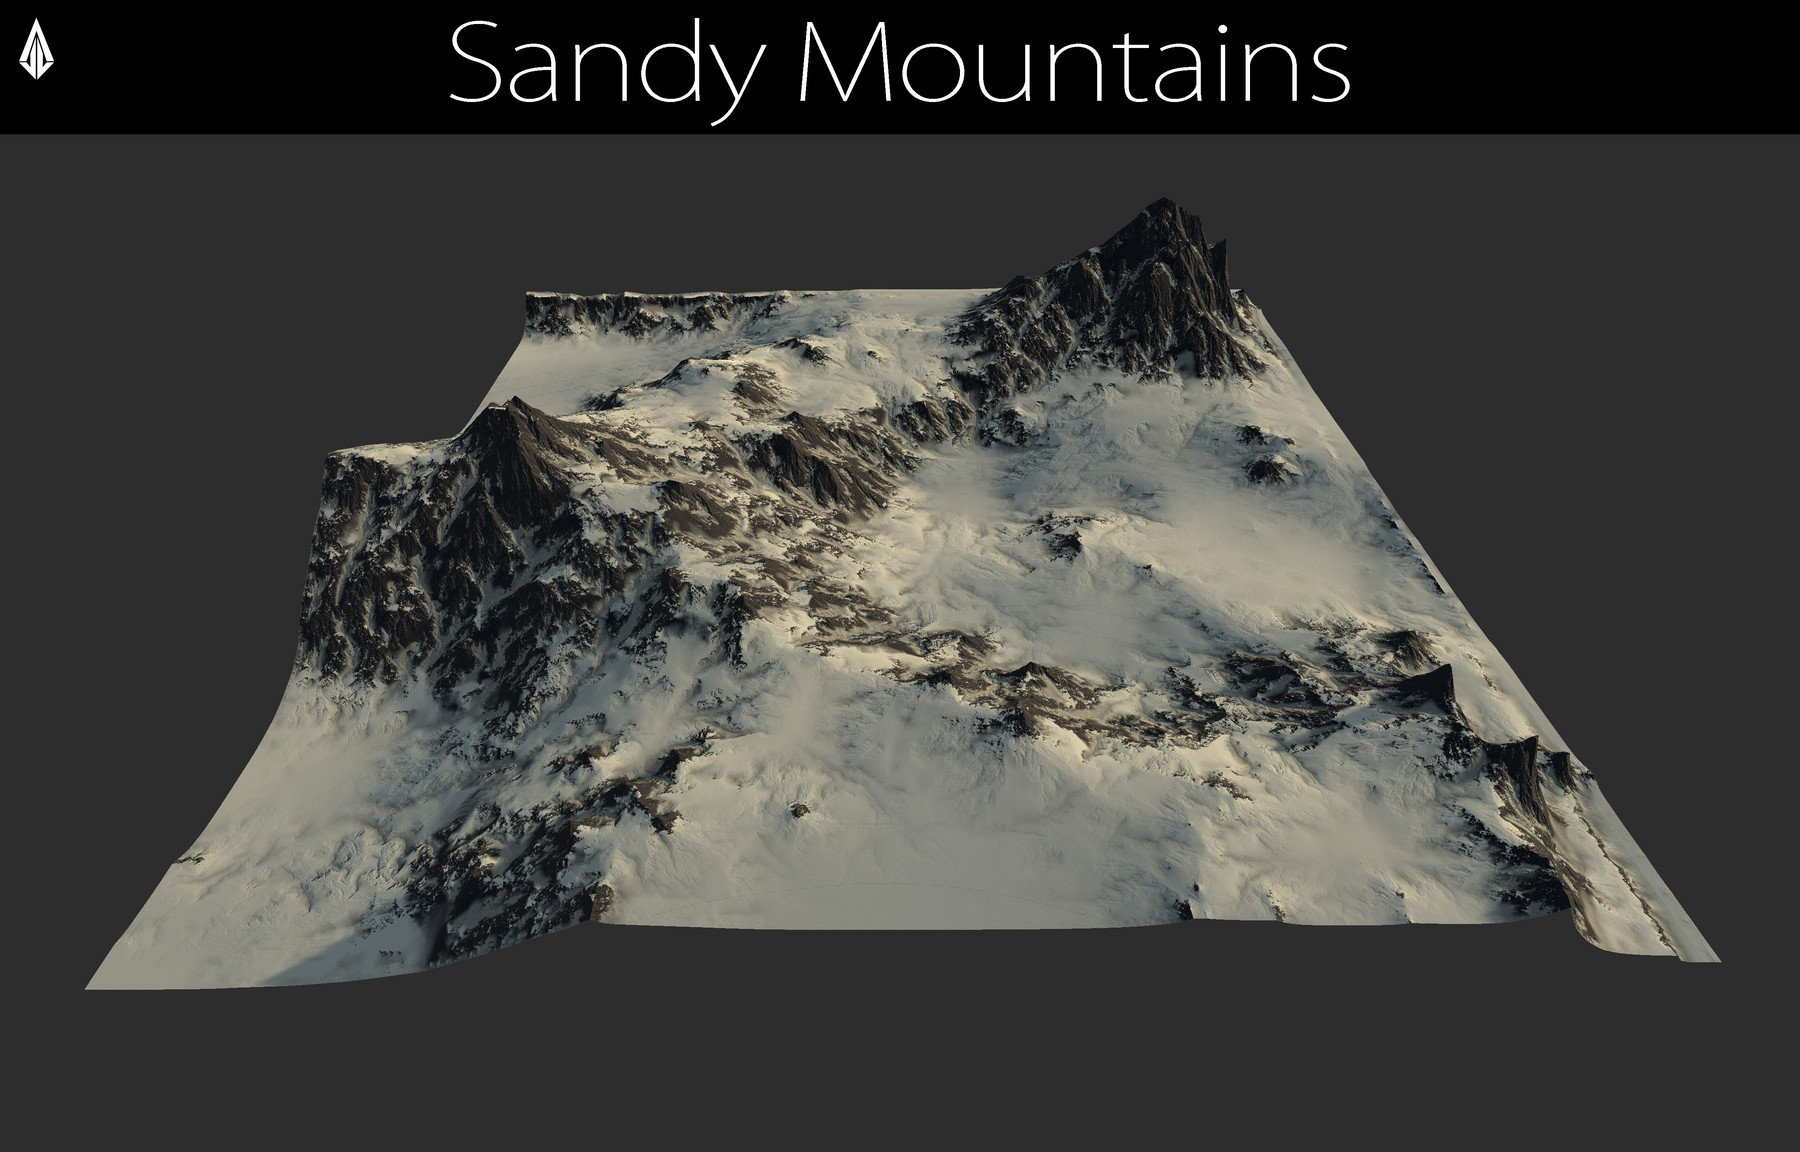 Jose Vega - Terrain - 3 Sandy Mountains Height maps / Models